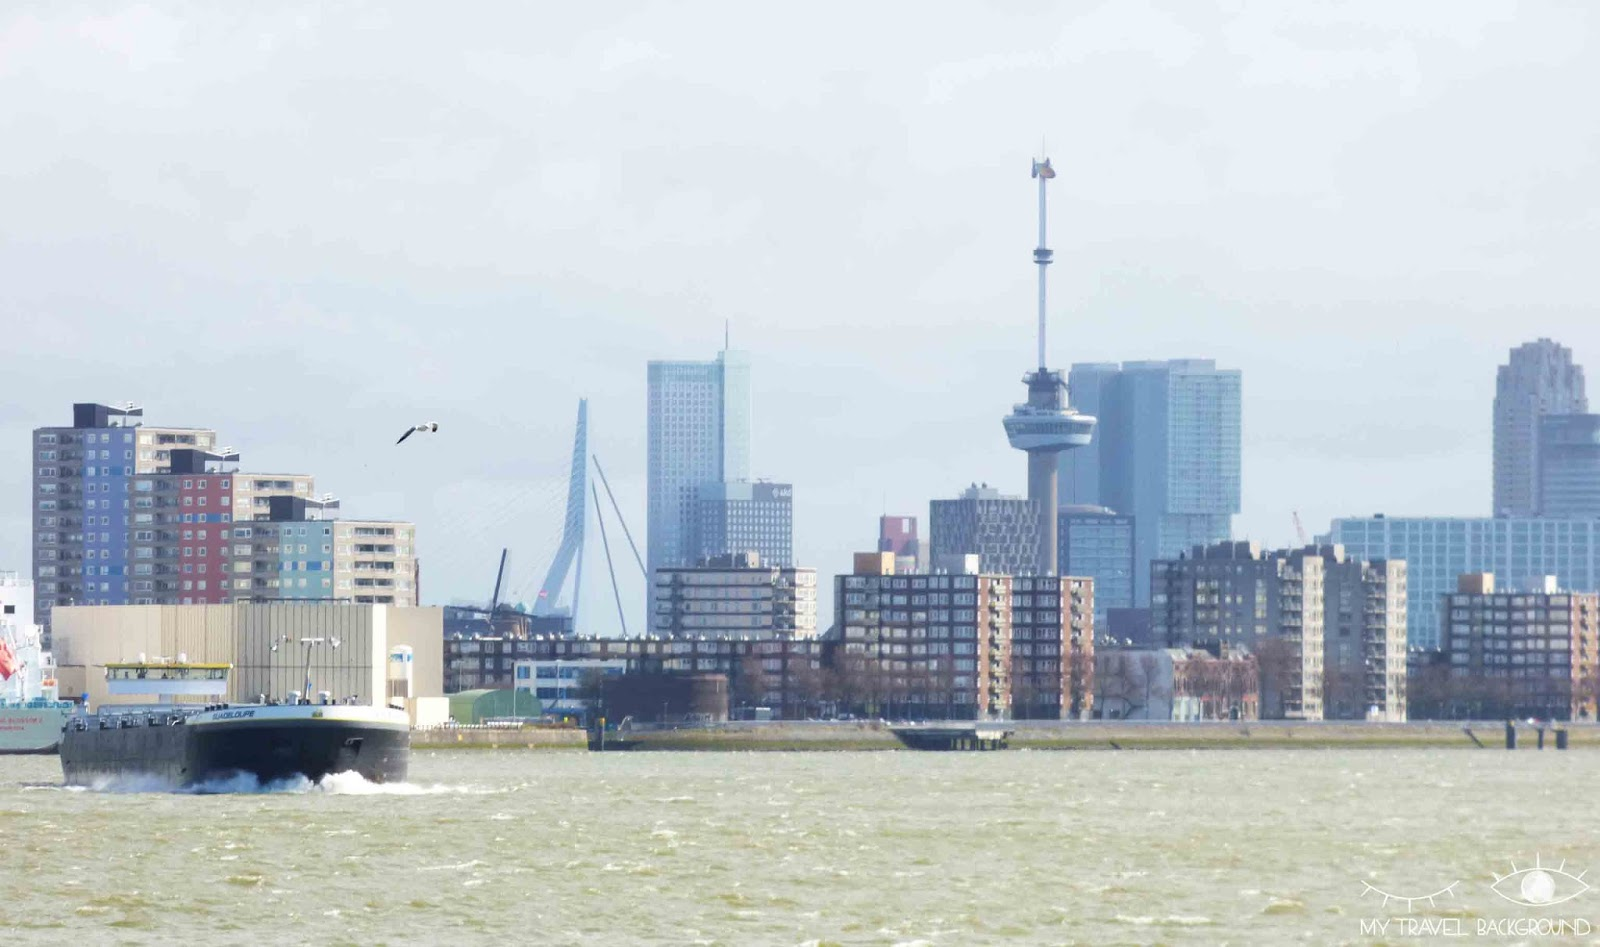 My Travel Background : pourquoi je suis tombée amoureuse de Rotterdam - Le port de Rotterdam